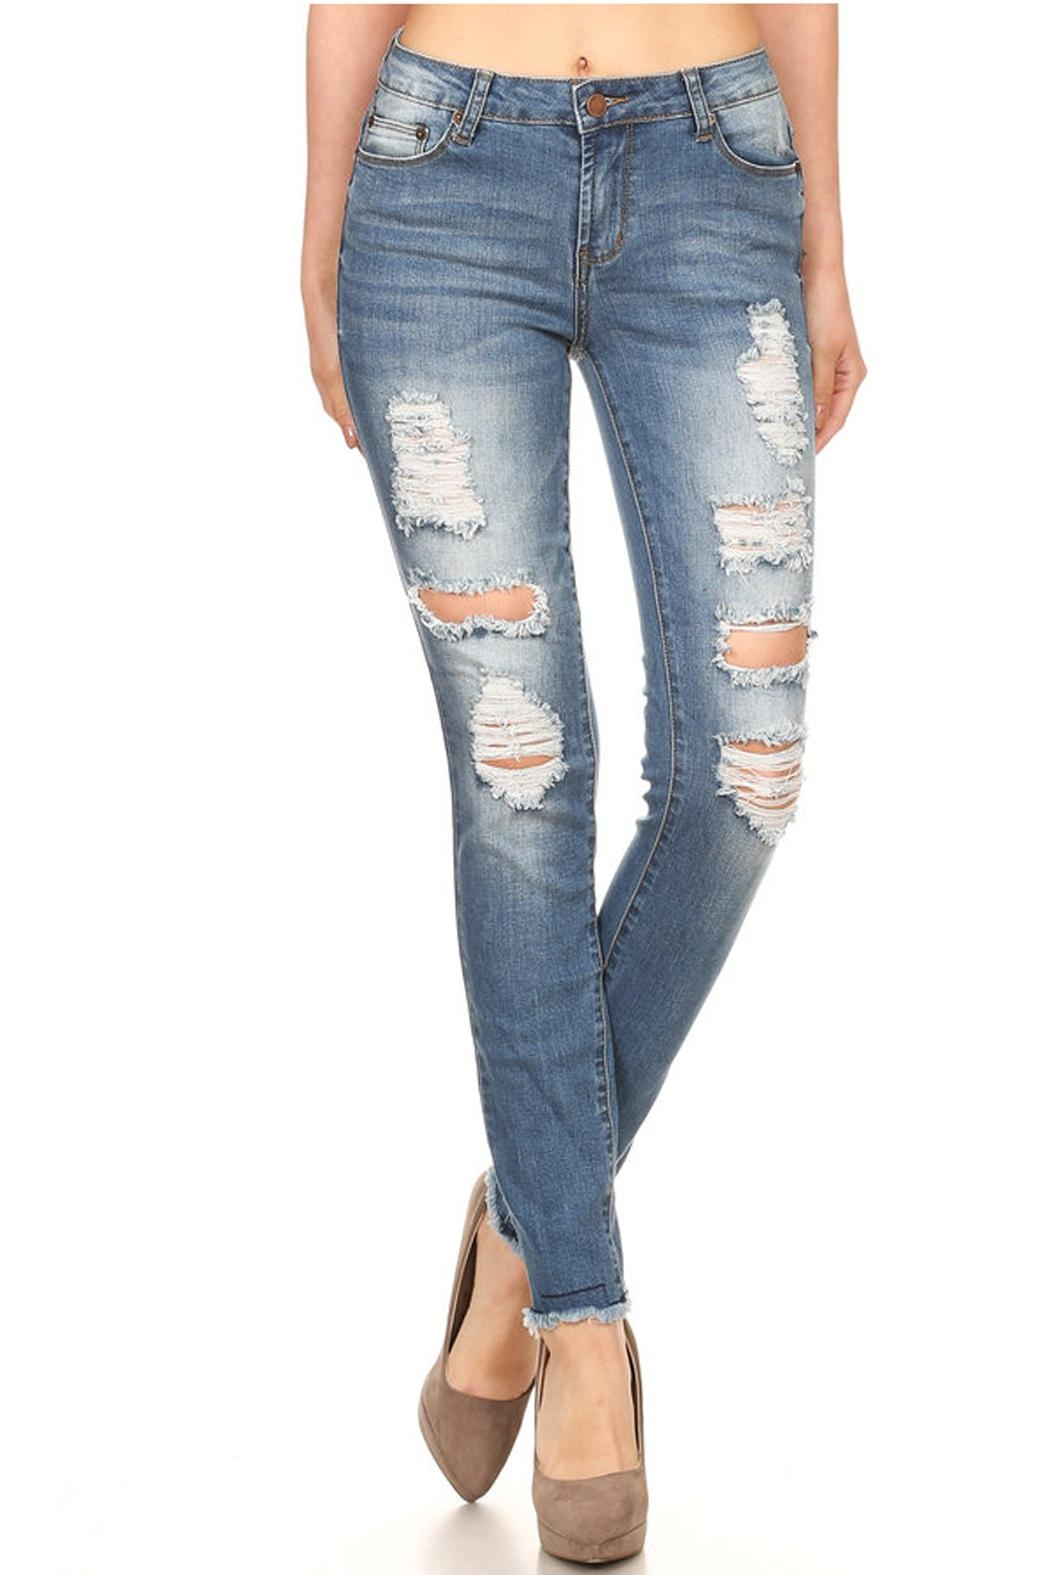 Muse Apparel Distressed Skinny Jeans - Main Image